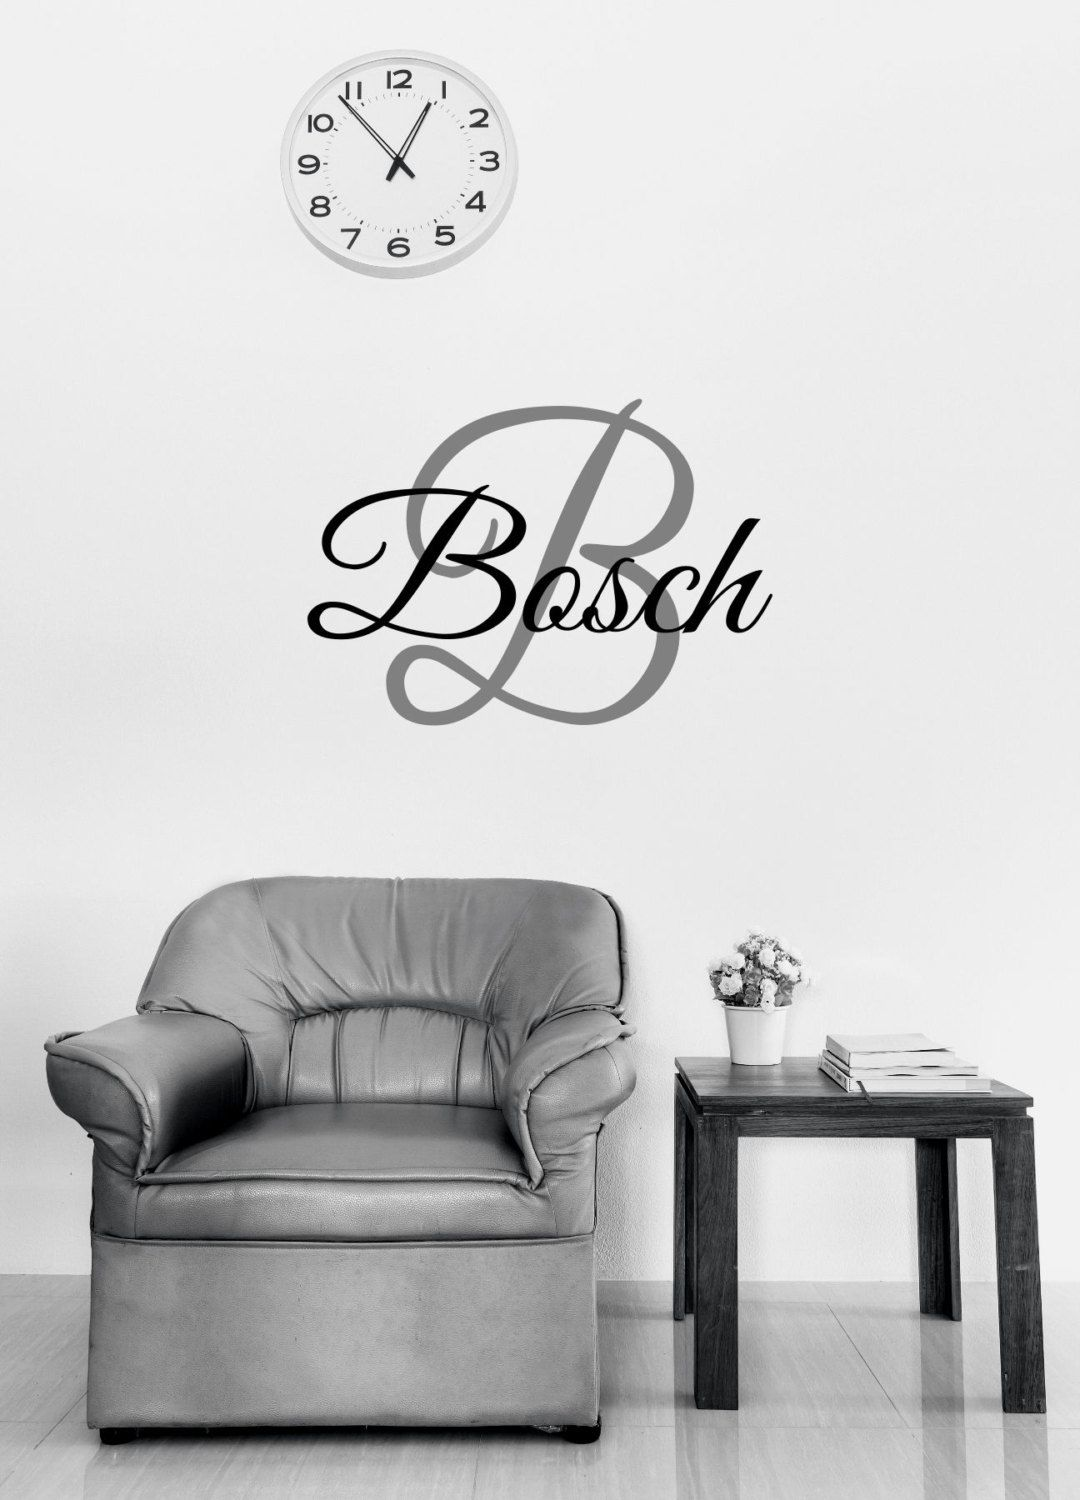 Custom family name  monogram vinyl wall art decal also rh pinterest